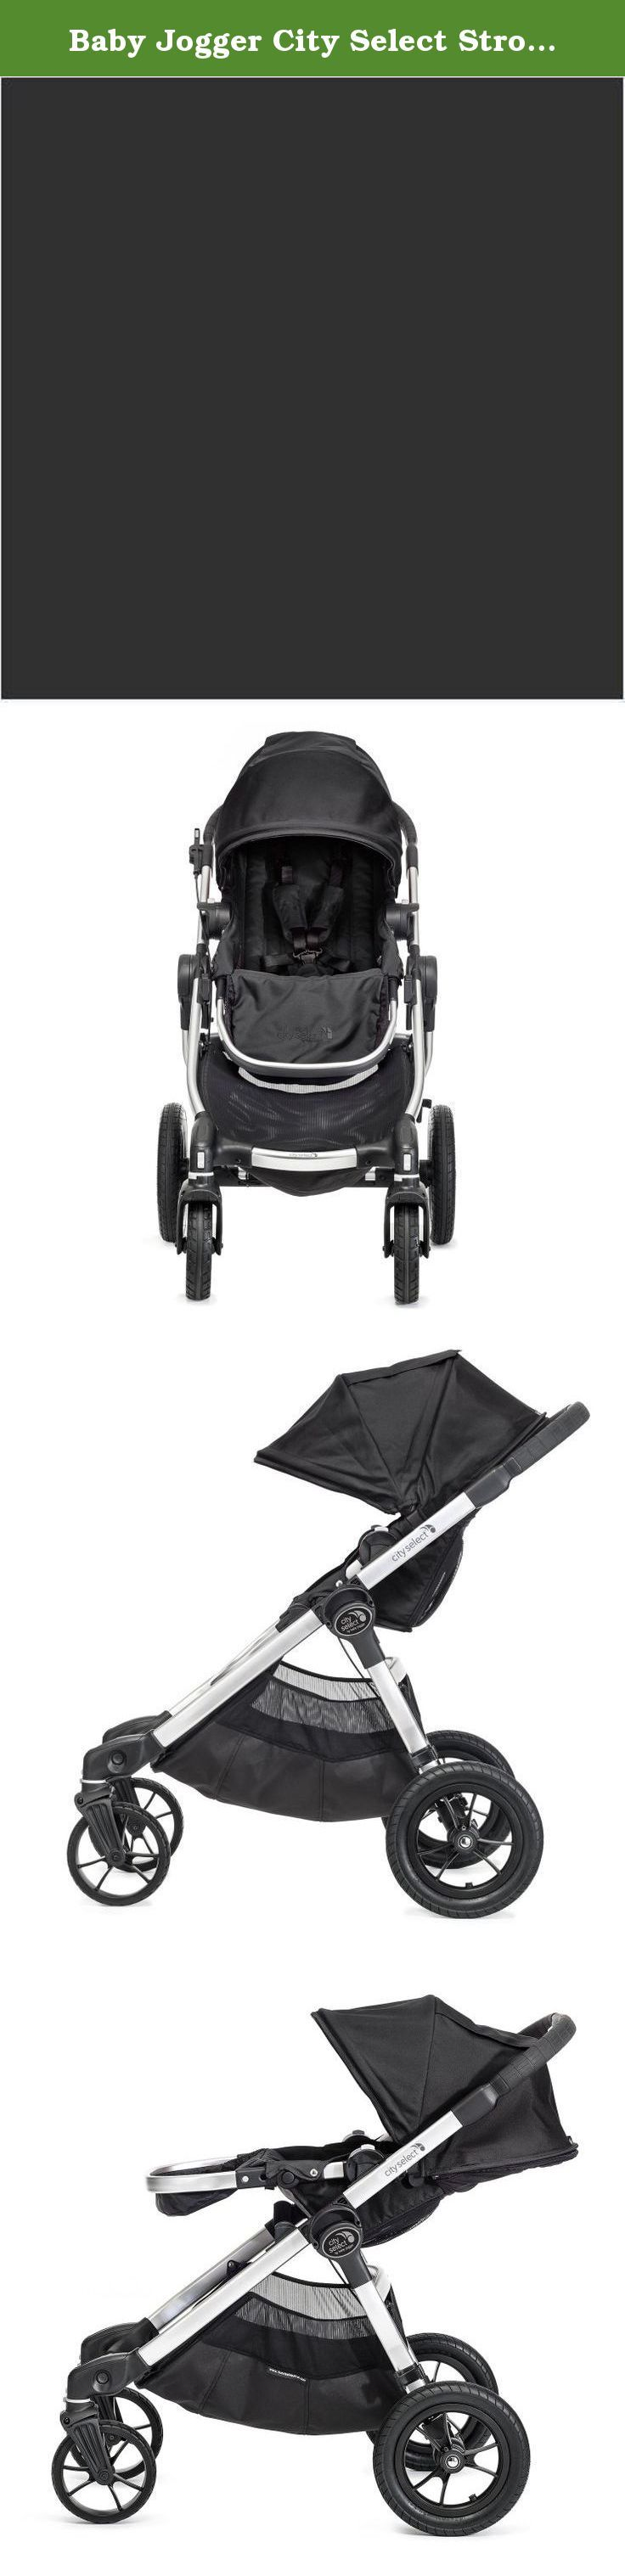 Baby Jogger City Select Stroller In Onyx. Our most